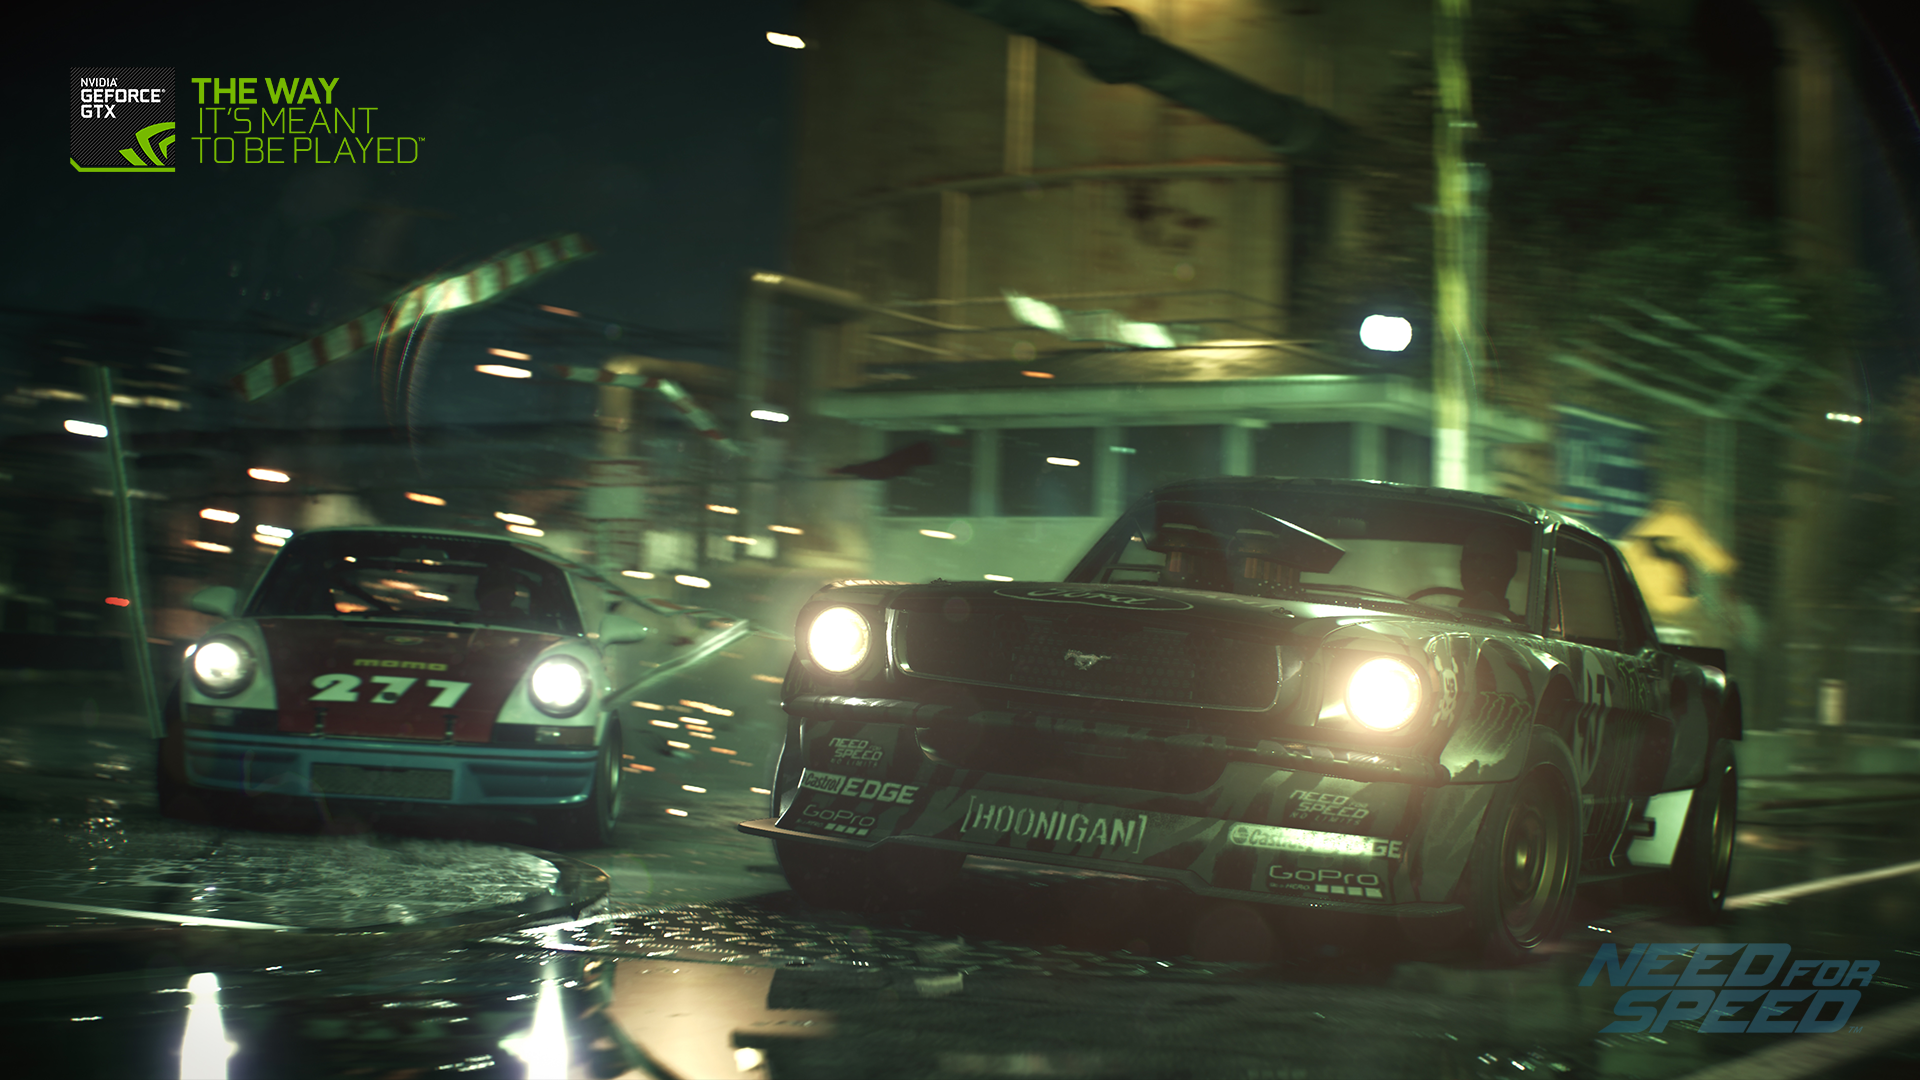 need for speed vita release date Check out ccc's in-depth need for speed: payback review for the ps4 to find out if this game is worth buying, renting, or if you should avoid it altogether.